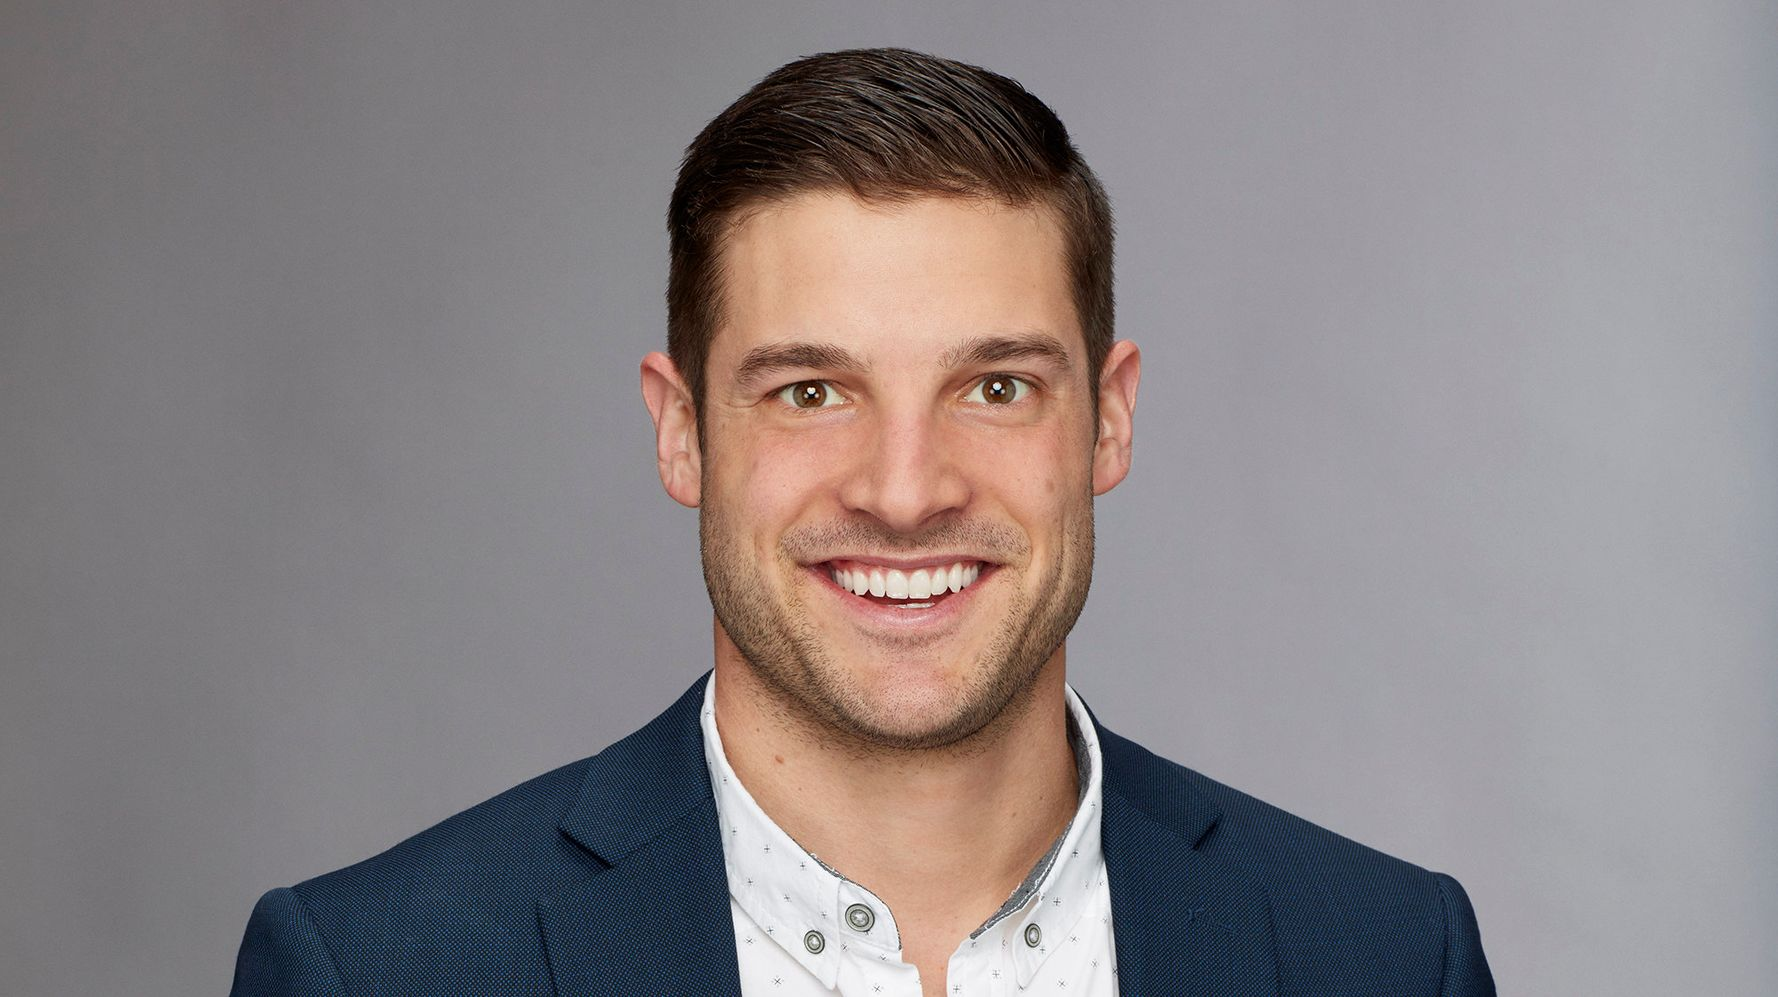 The Bachelorette's' Garrett Yrigoyen 'Liked' Posts Mocking